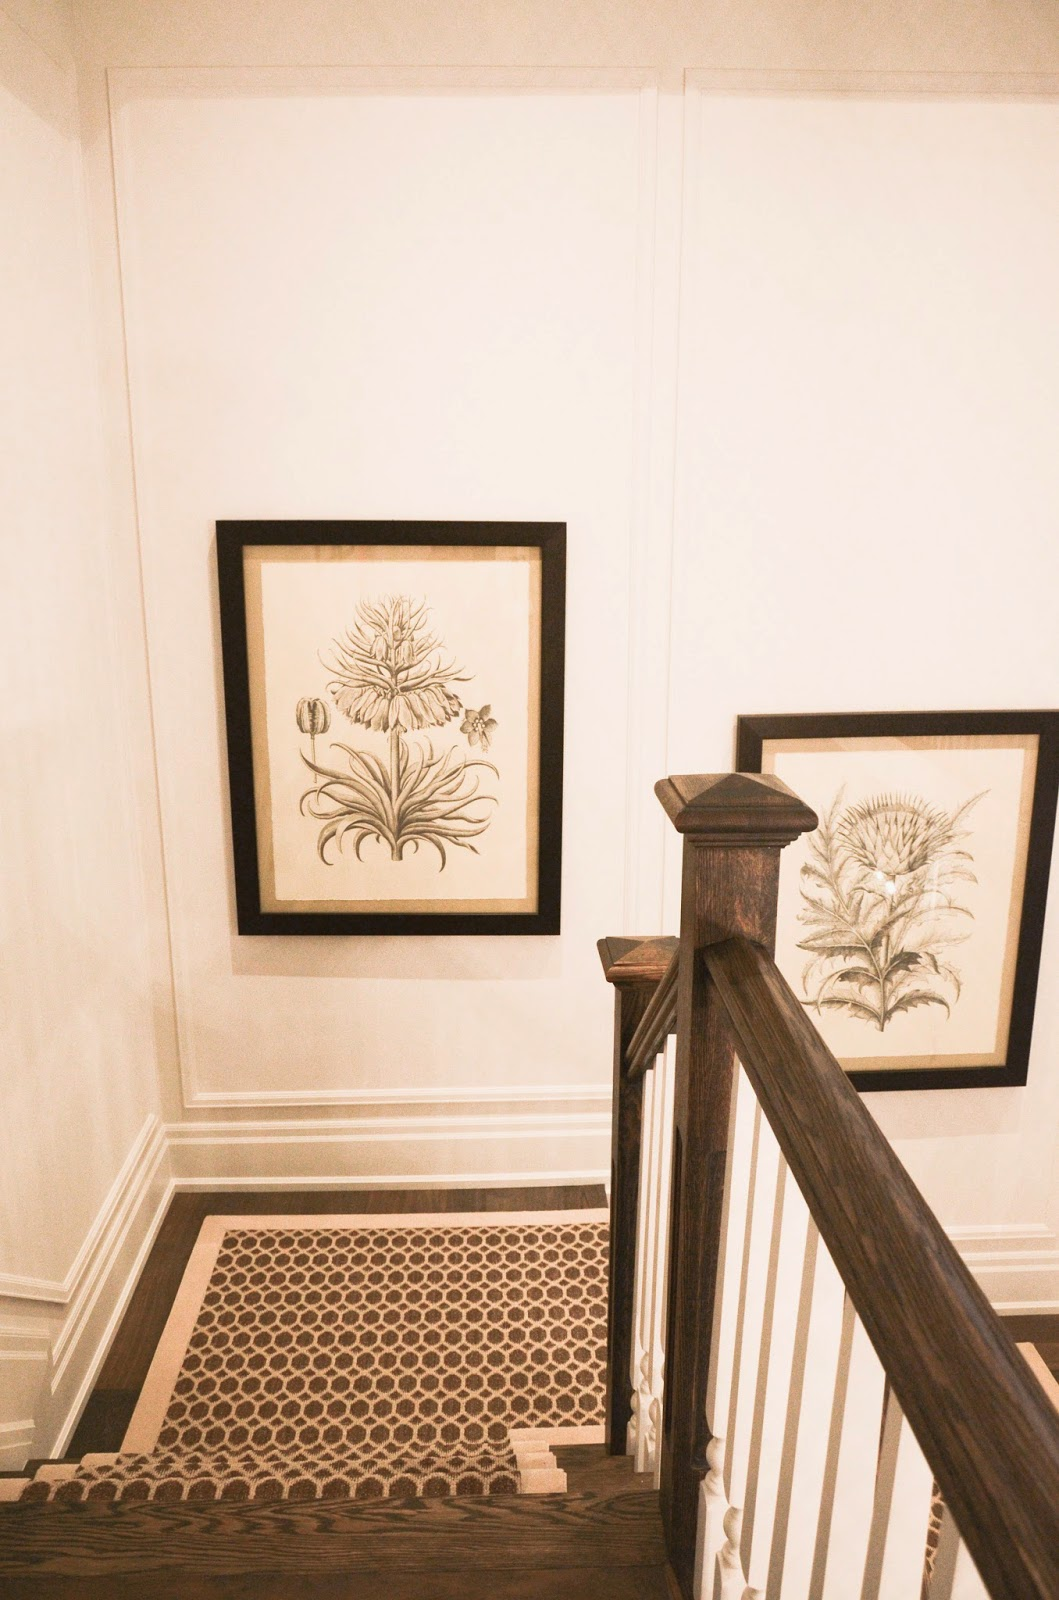 PMLOTTO KLEINBURG SHOWROOM: Grand scale art on stairways